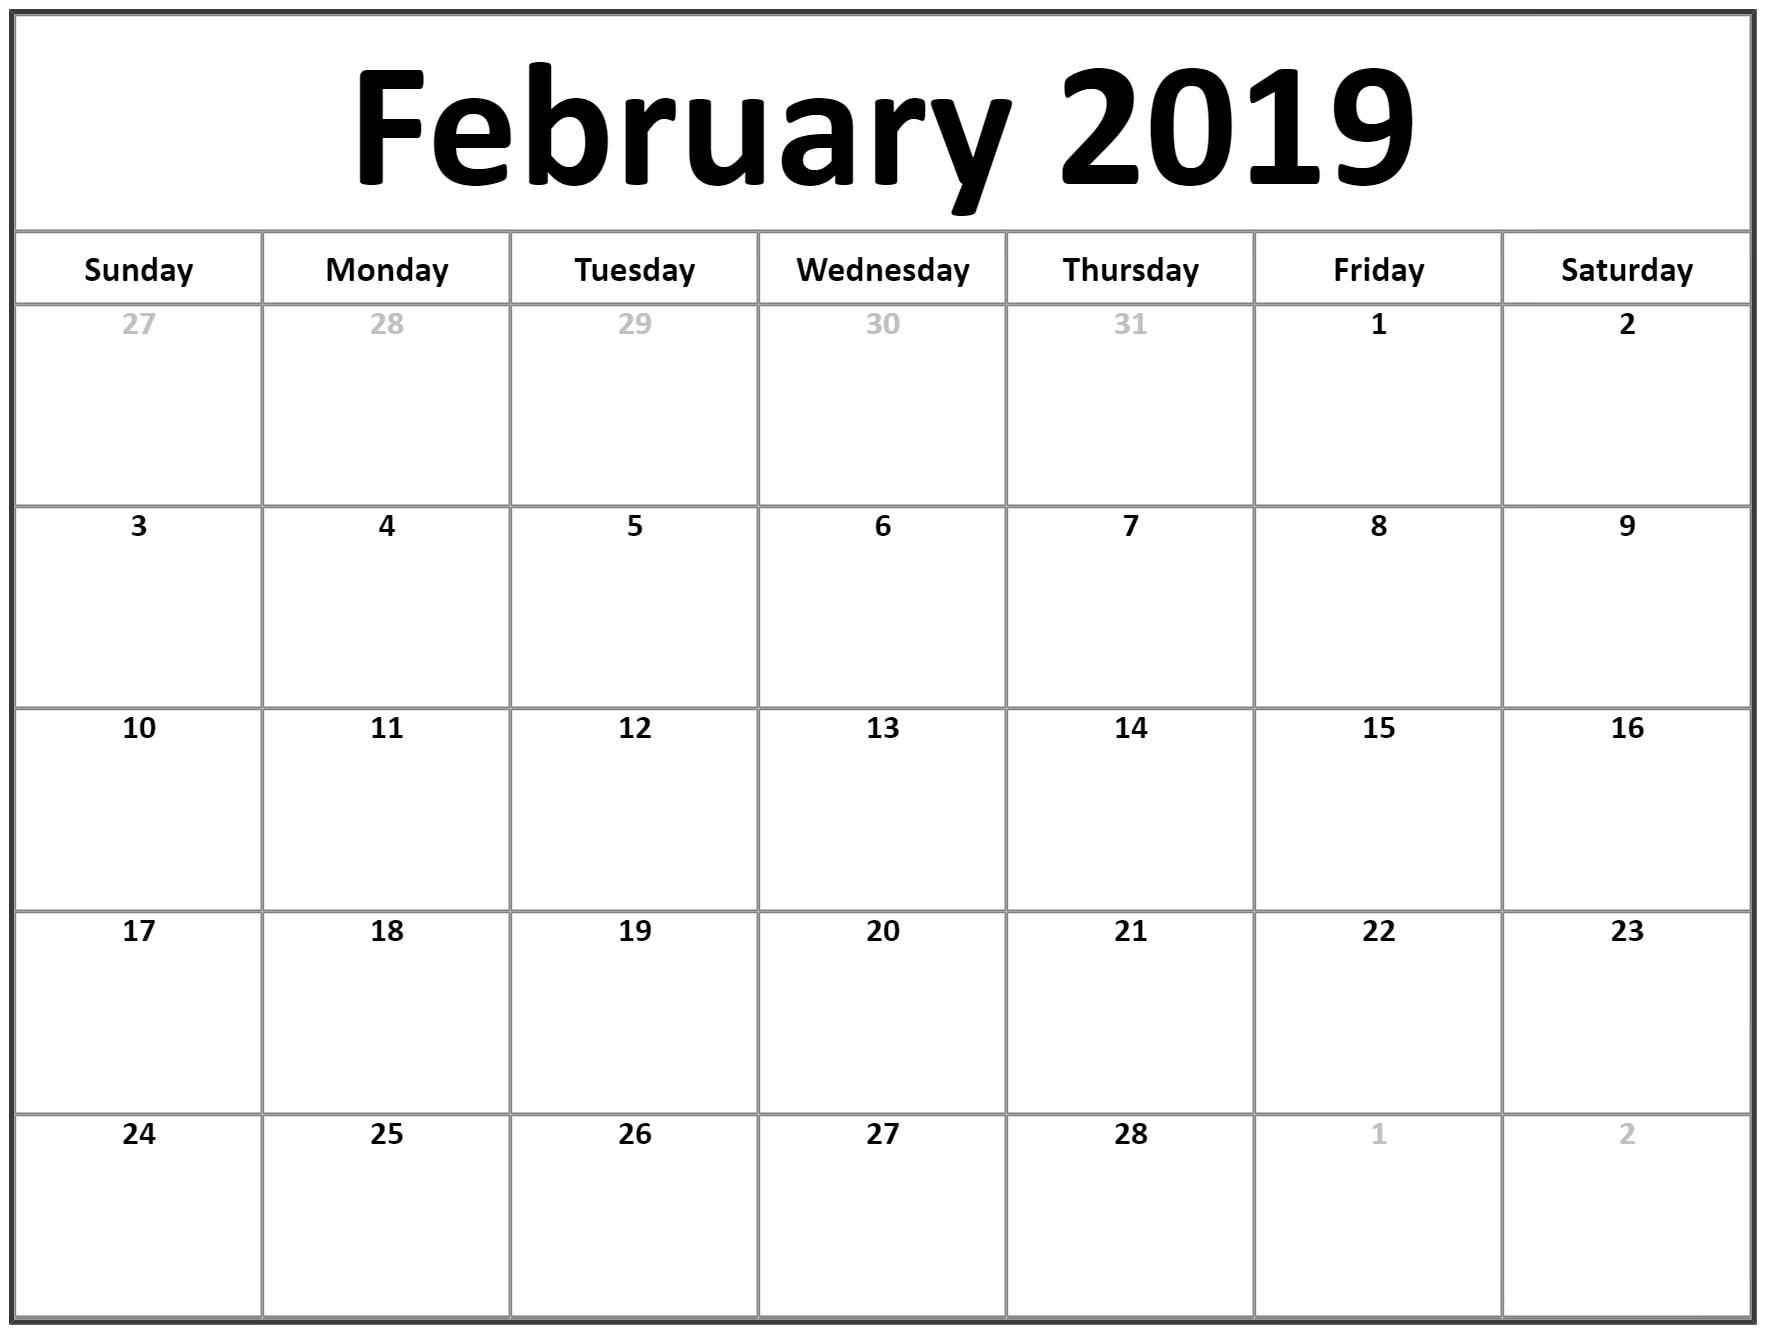 Printable Calendar Pages February 2019 february 2019 calendar calendar template printablefebruary 2019